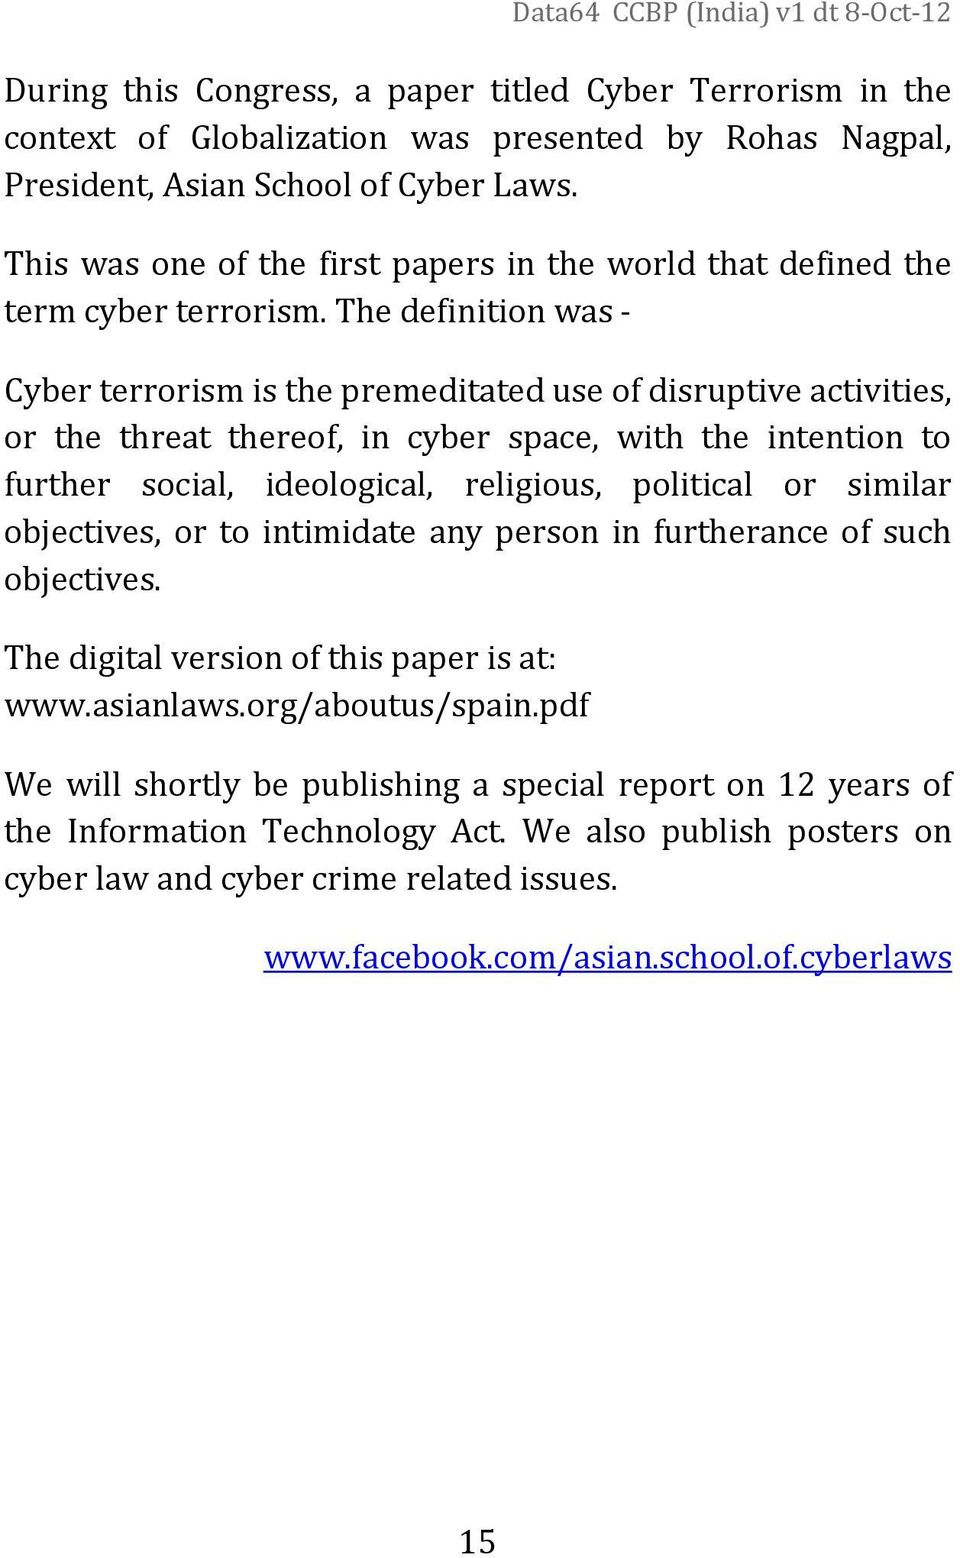 The definition was - Cyber terrorism is the premeditated use of disruptive activities, or the threat thereof, in cyber space, with the intention to further social, ideological, religious, political